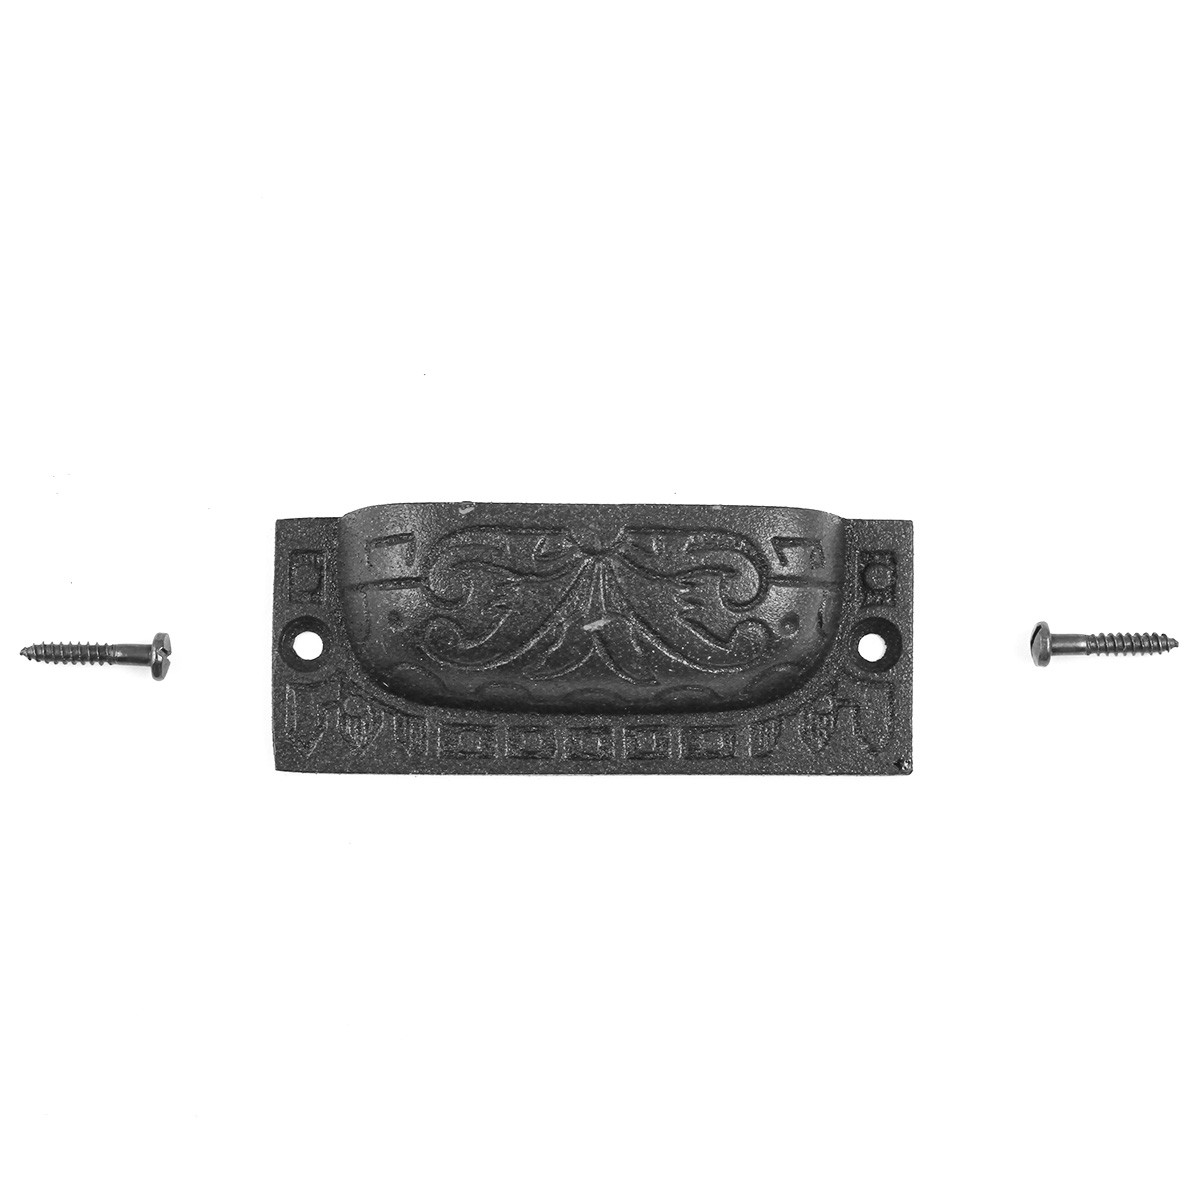 10 Cabinet or Drawer Bin Pull Black Iron Cup 3 12 x 1 14 H Cabinet Pull Cabinet Hardware Cabinet Pulls